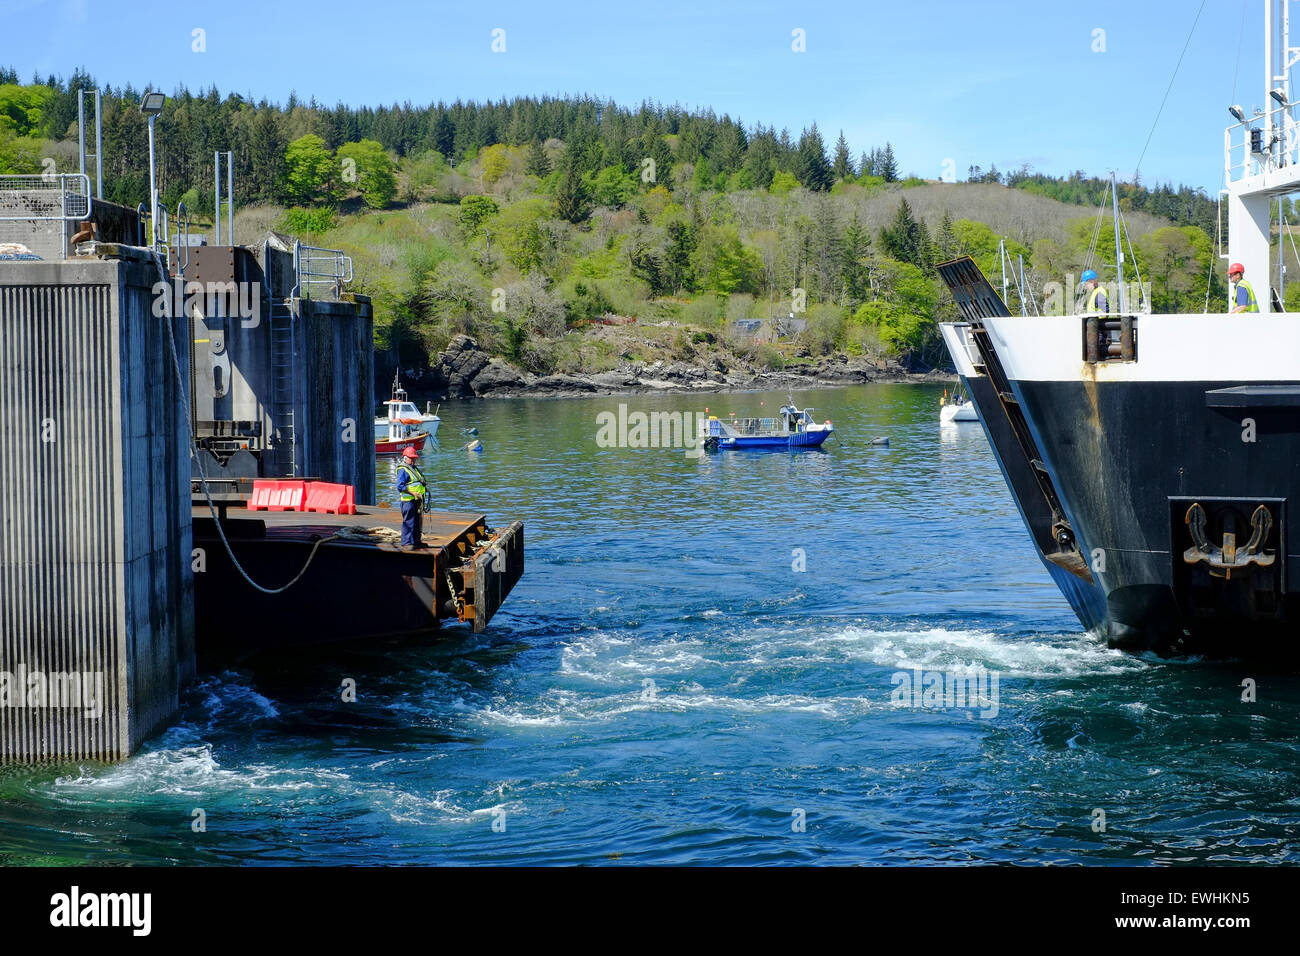 Isle of Skye, Scotland. The ferry from Mallaig docking at Skye - Stock Image